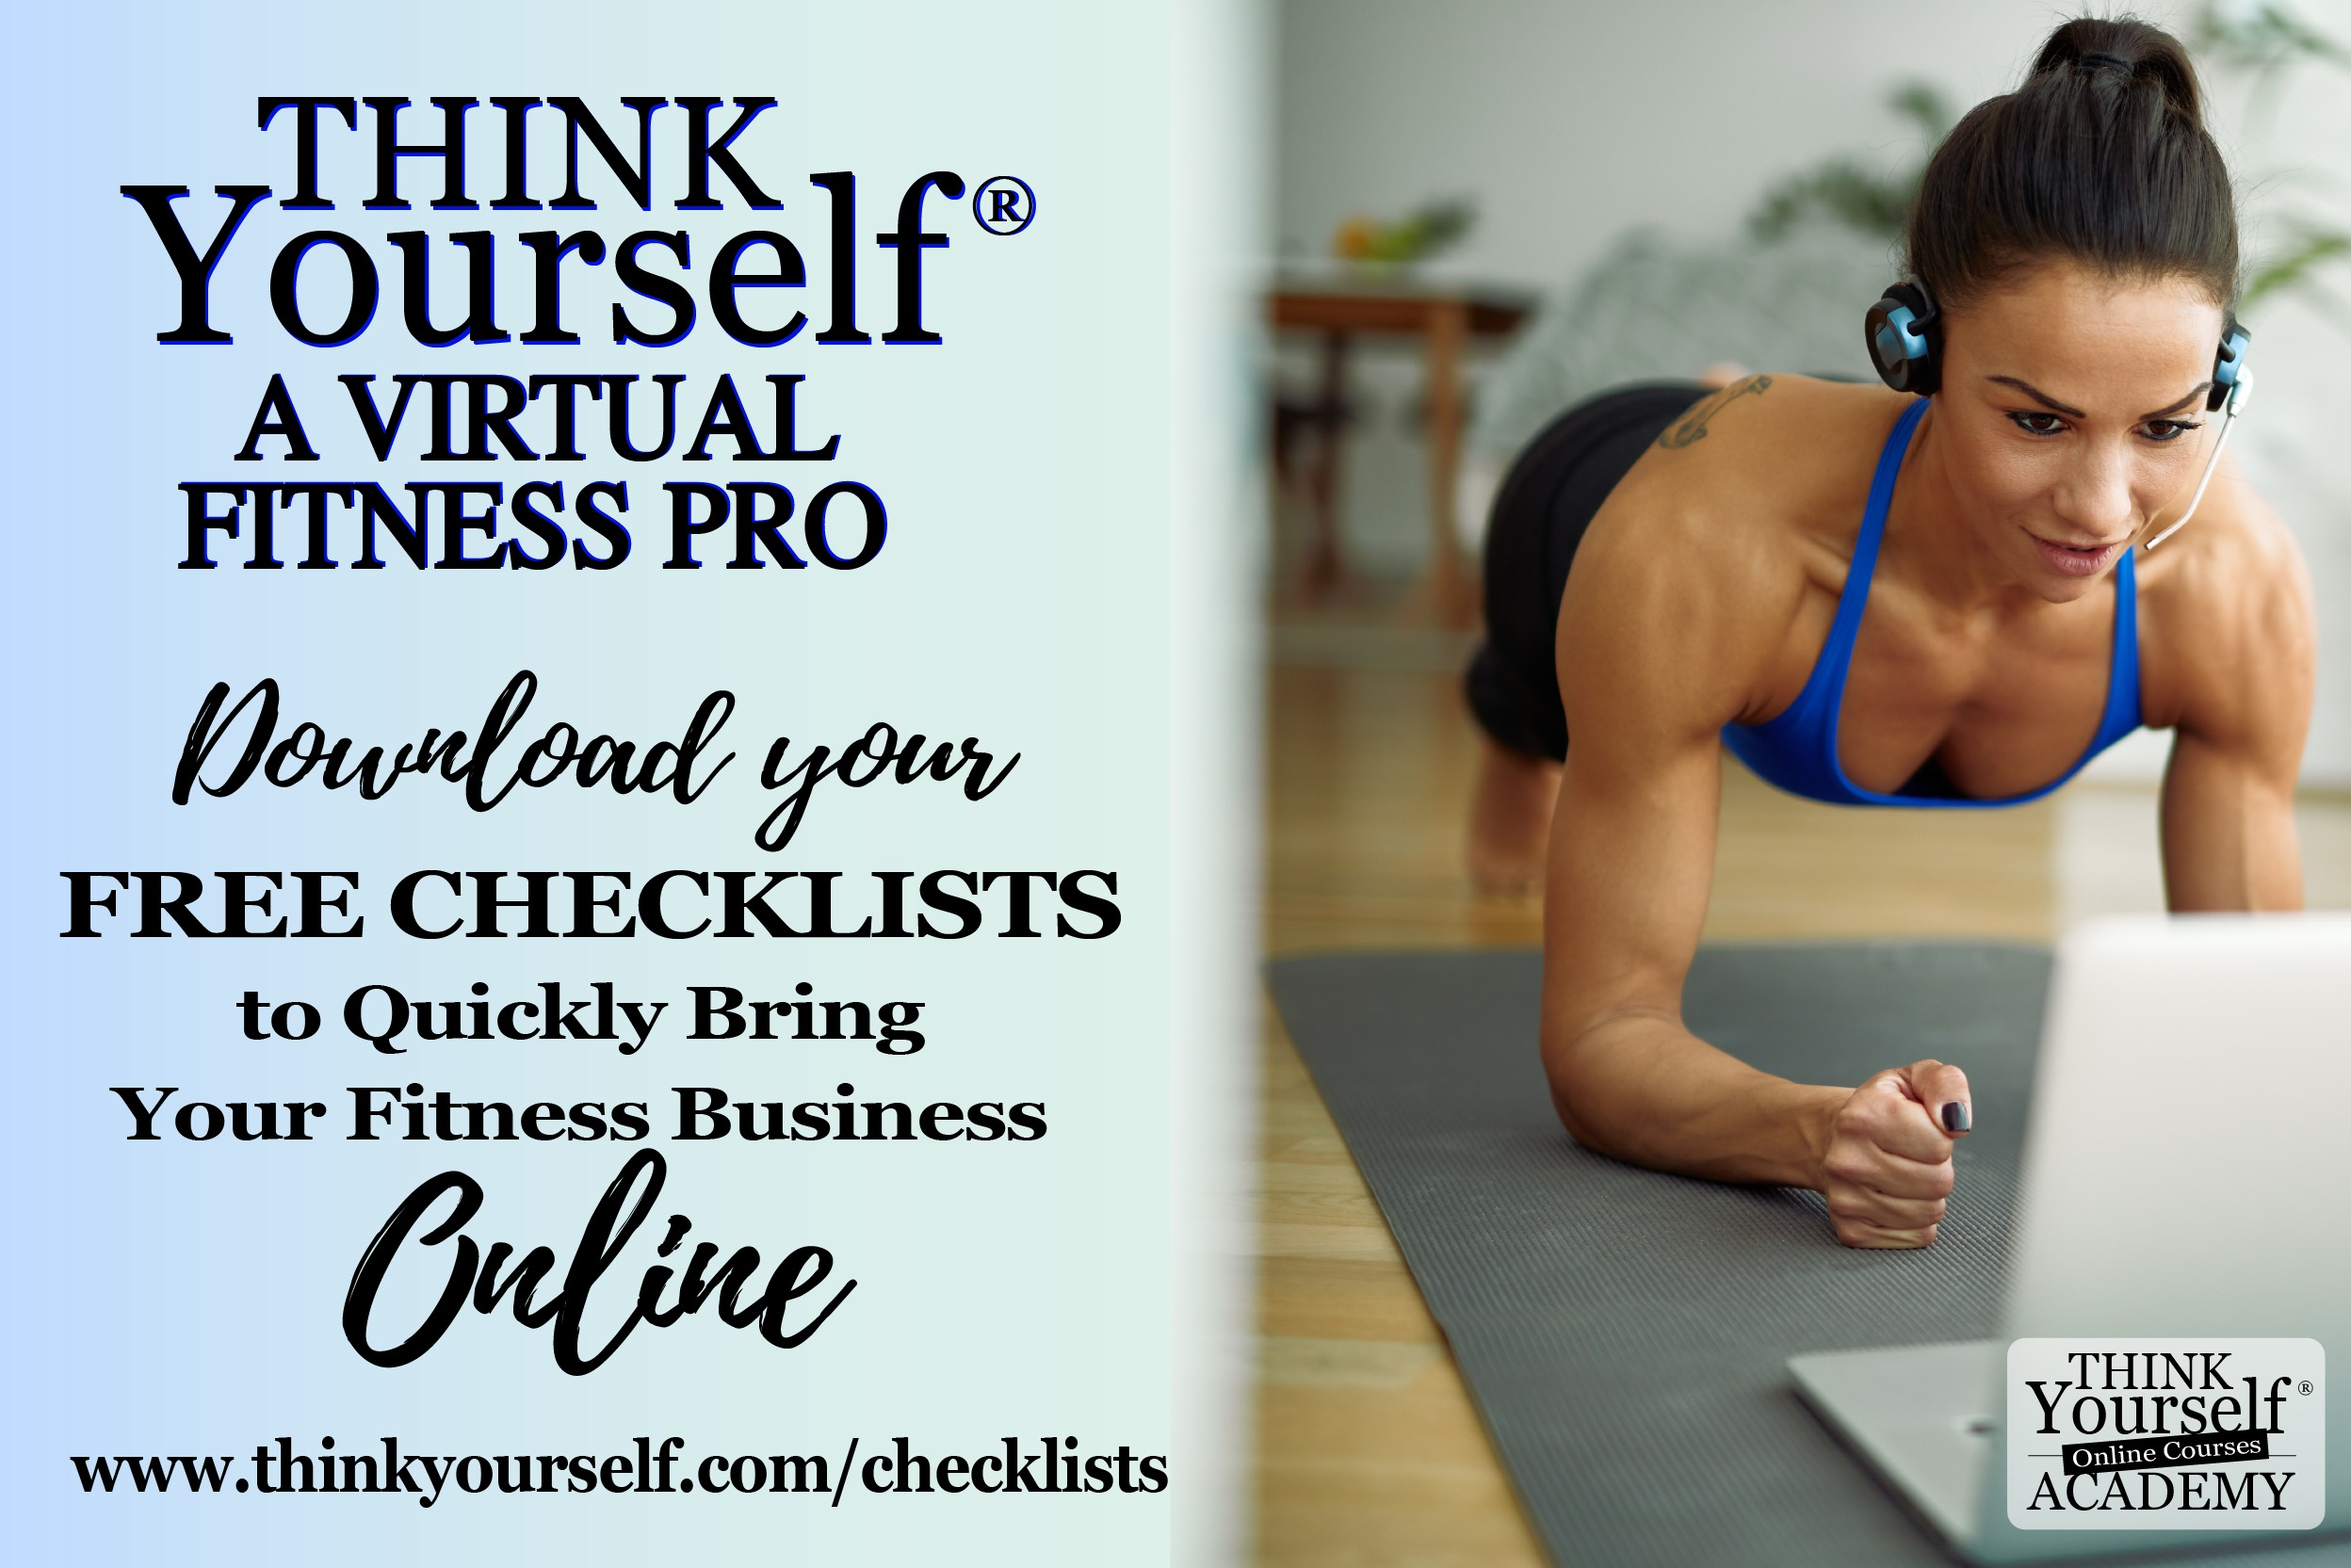 Think yourself academy ad banner